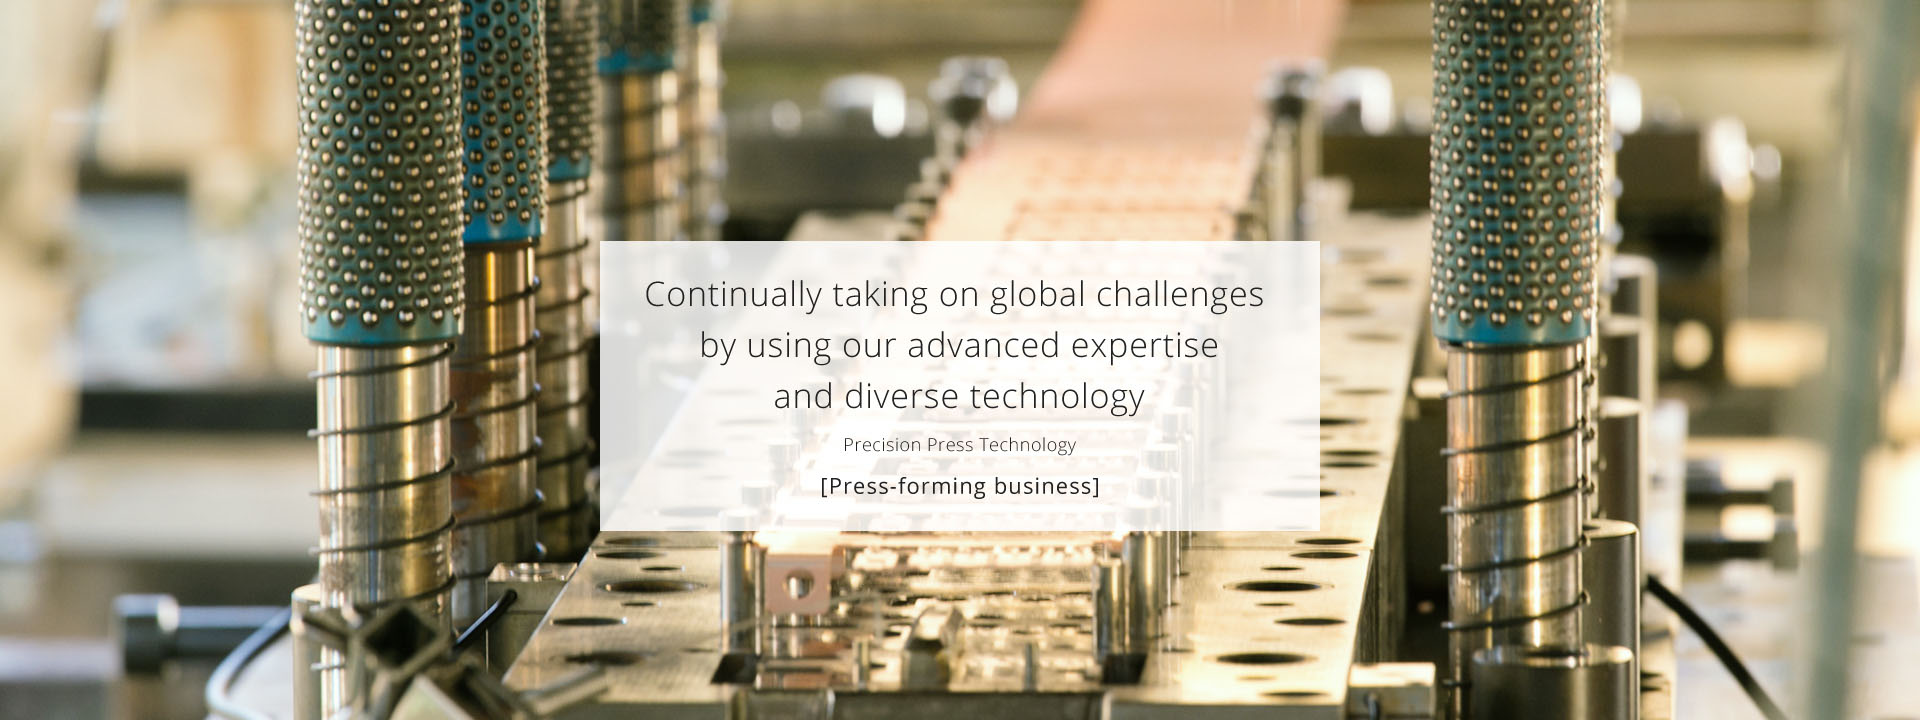 Continually taking on global challenges by using our advanced expertise and diverse technology [Press-forming business]